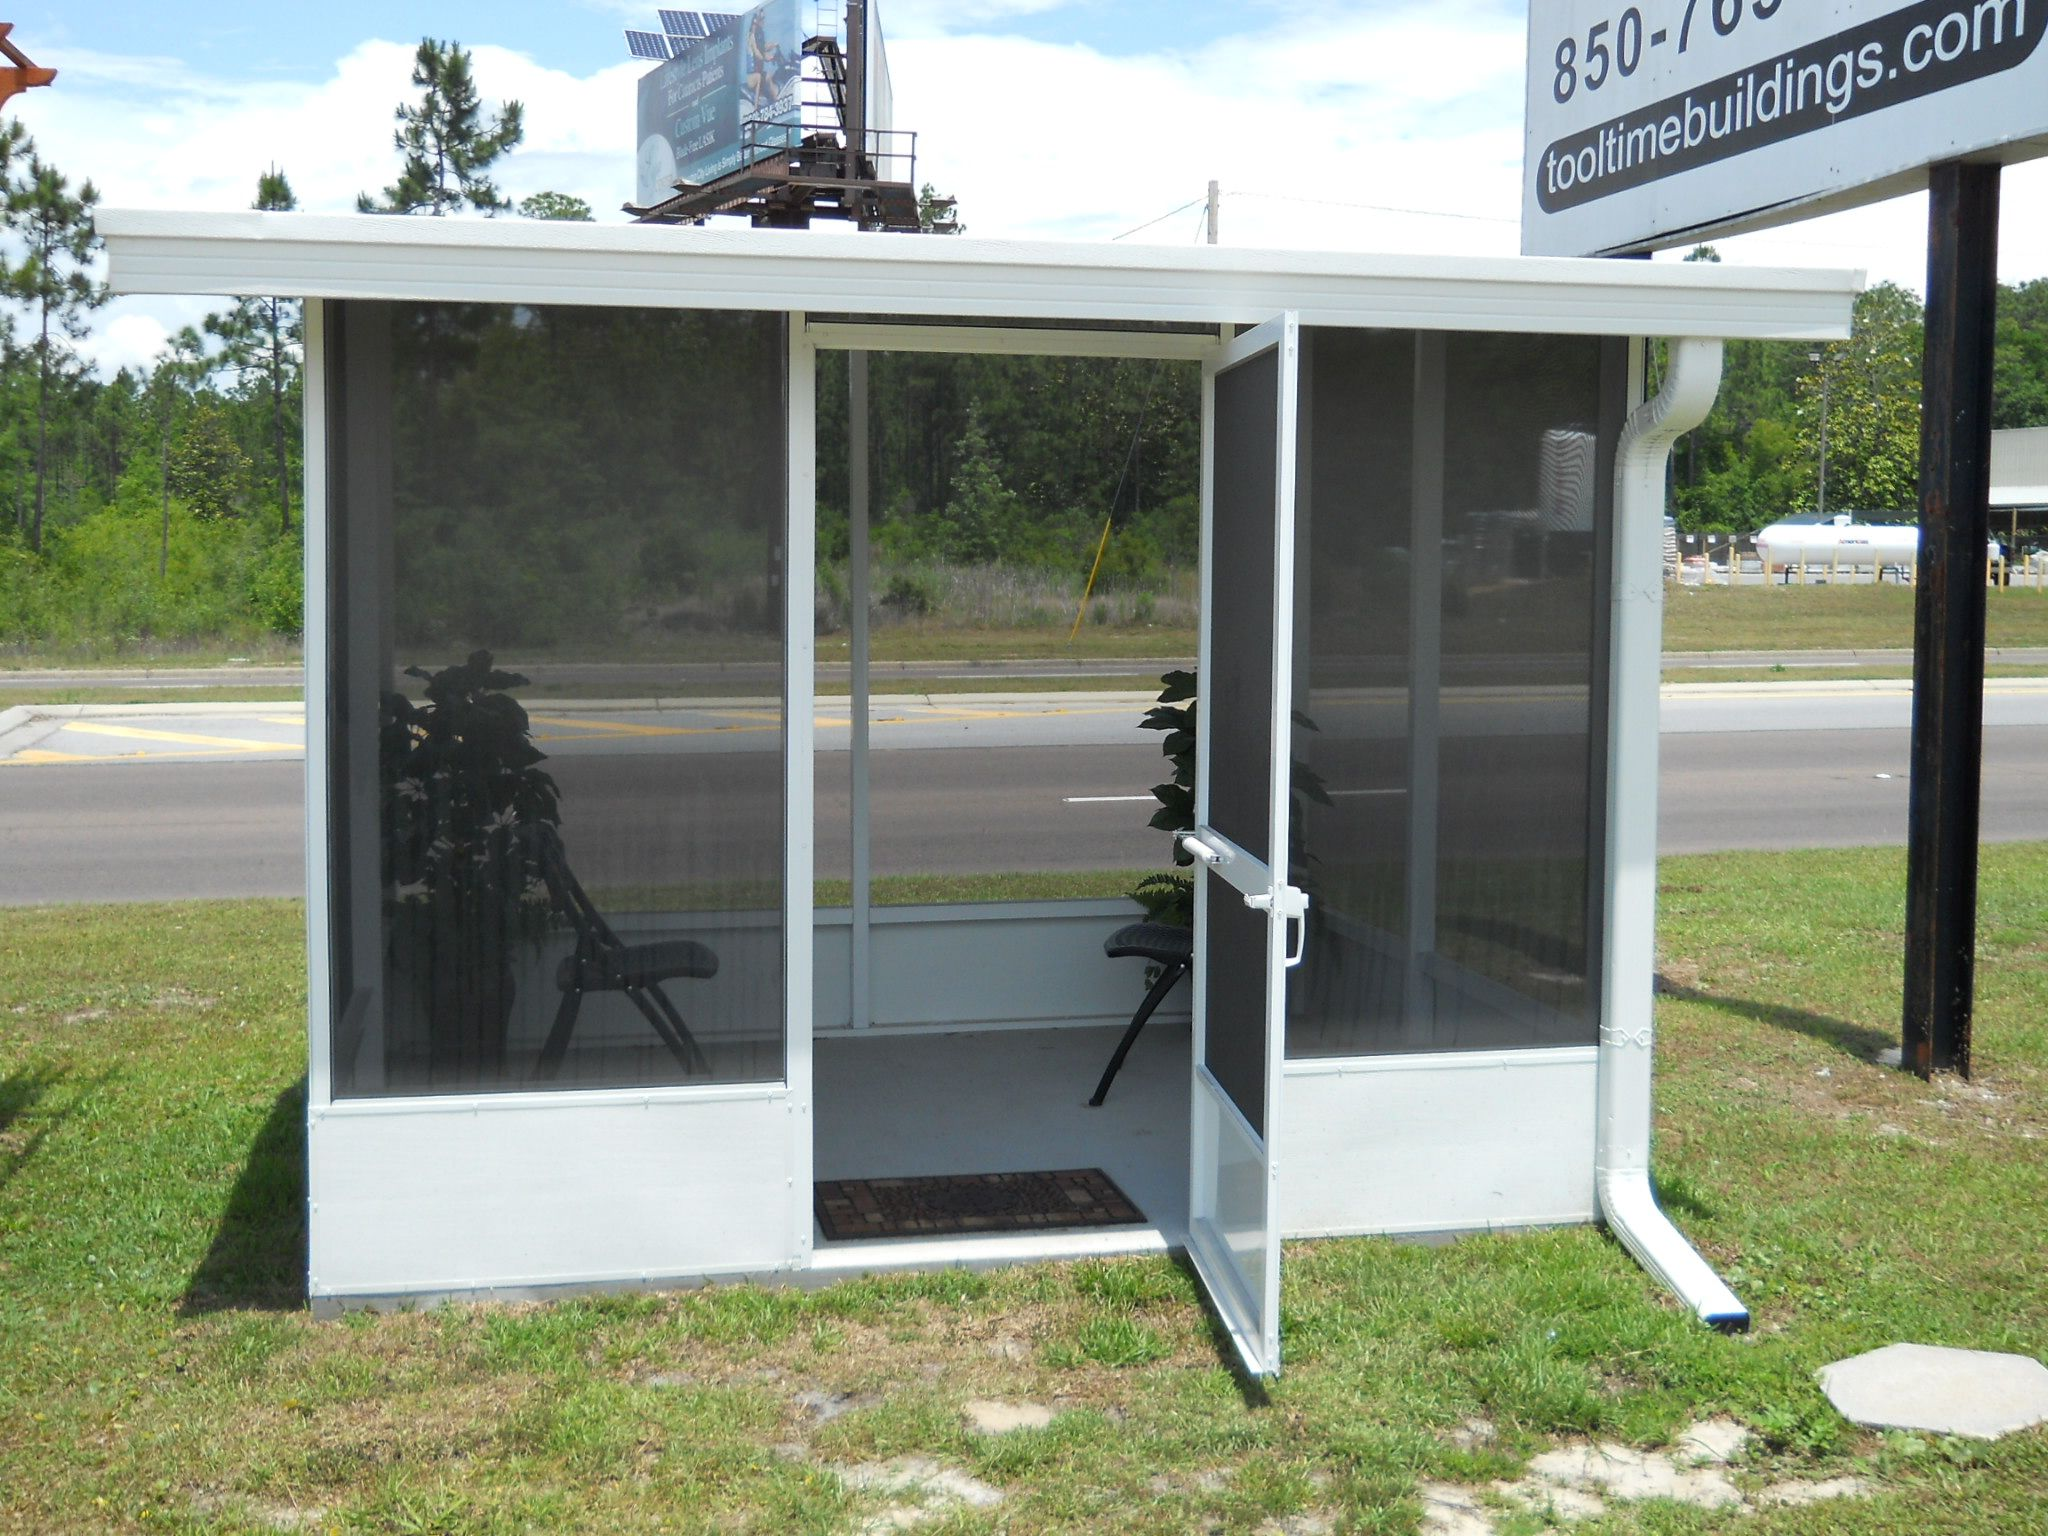 Portable Screen Room Google Search Portable Gazebo Screened Porch Patio Enclosures